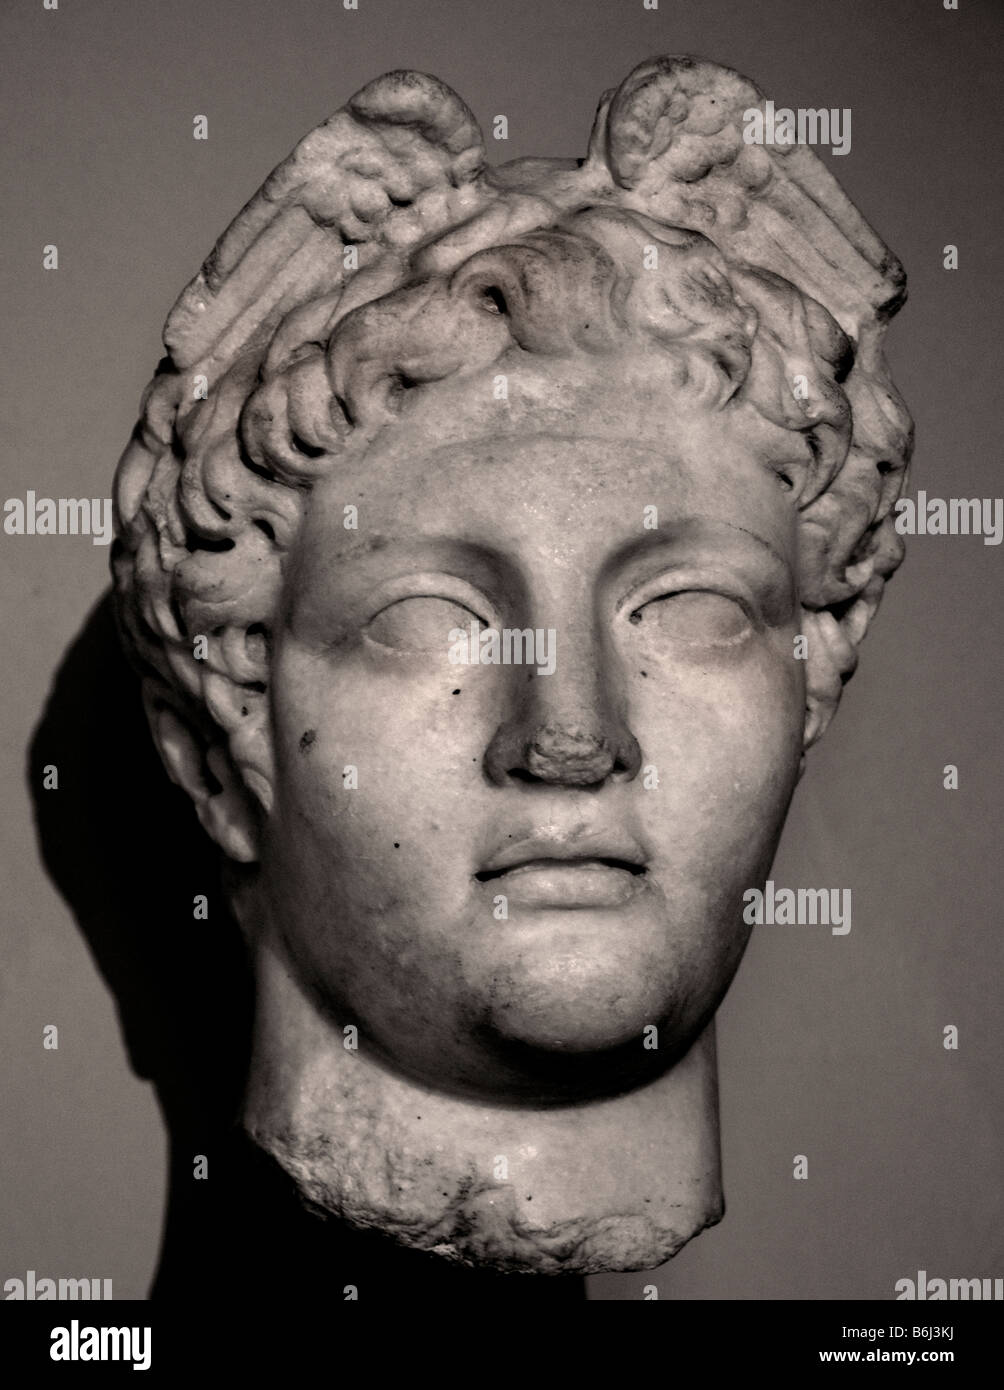 Head of Hermes god of Dexterity skill messengers thief and guide marble Pergamum Bergama Roman 1st century AD - Stock Image